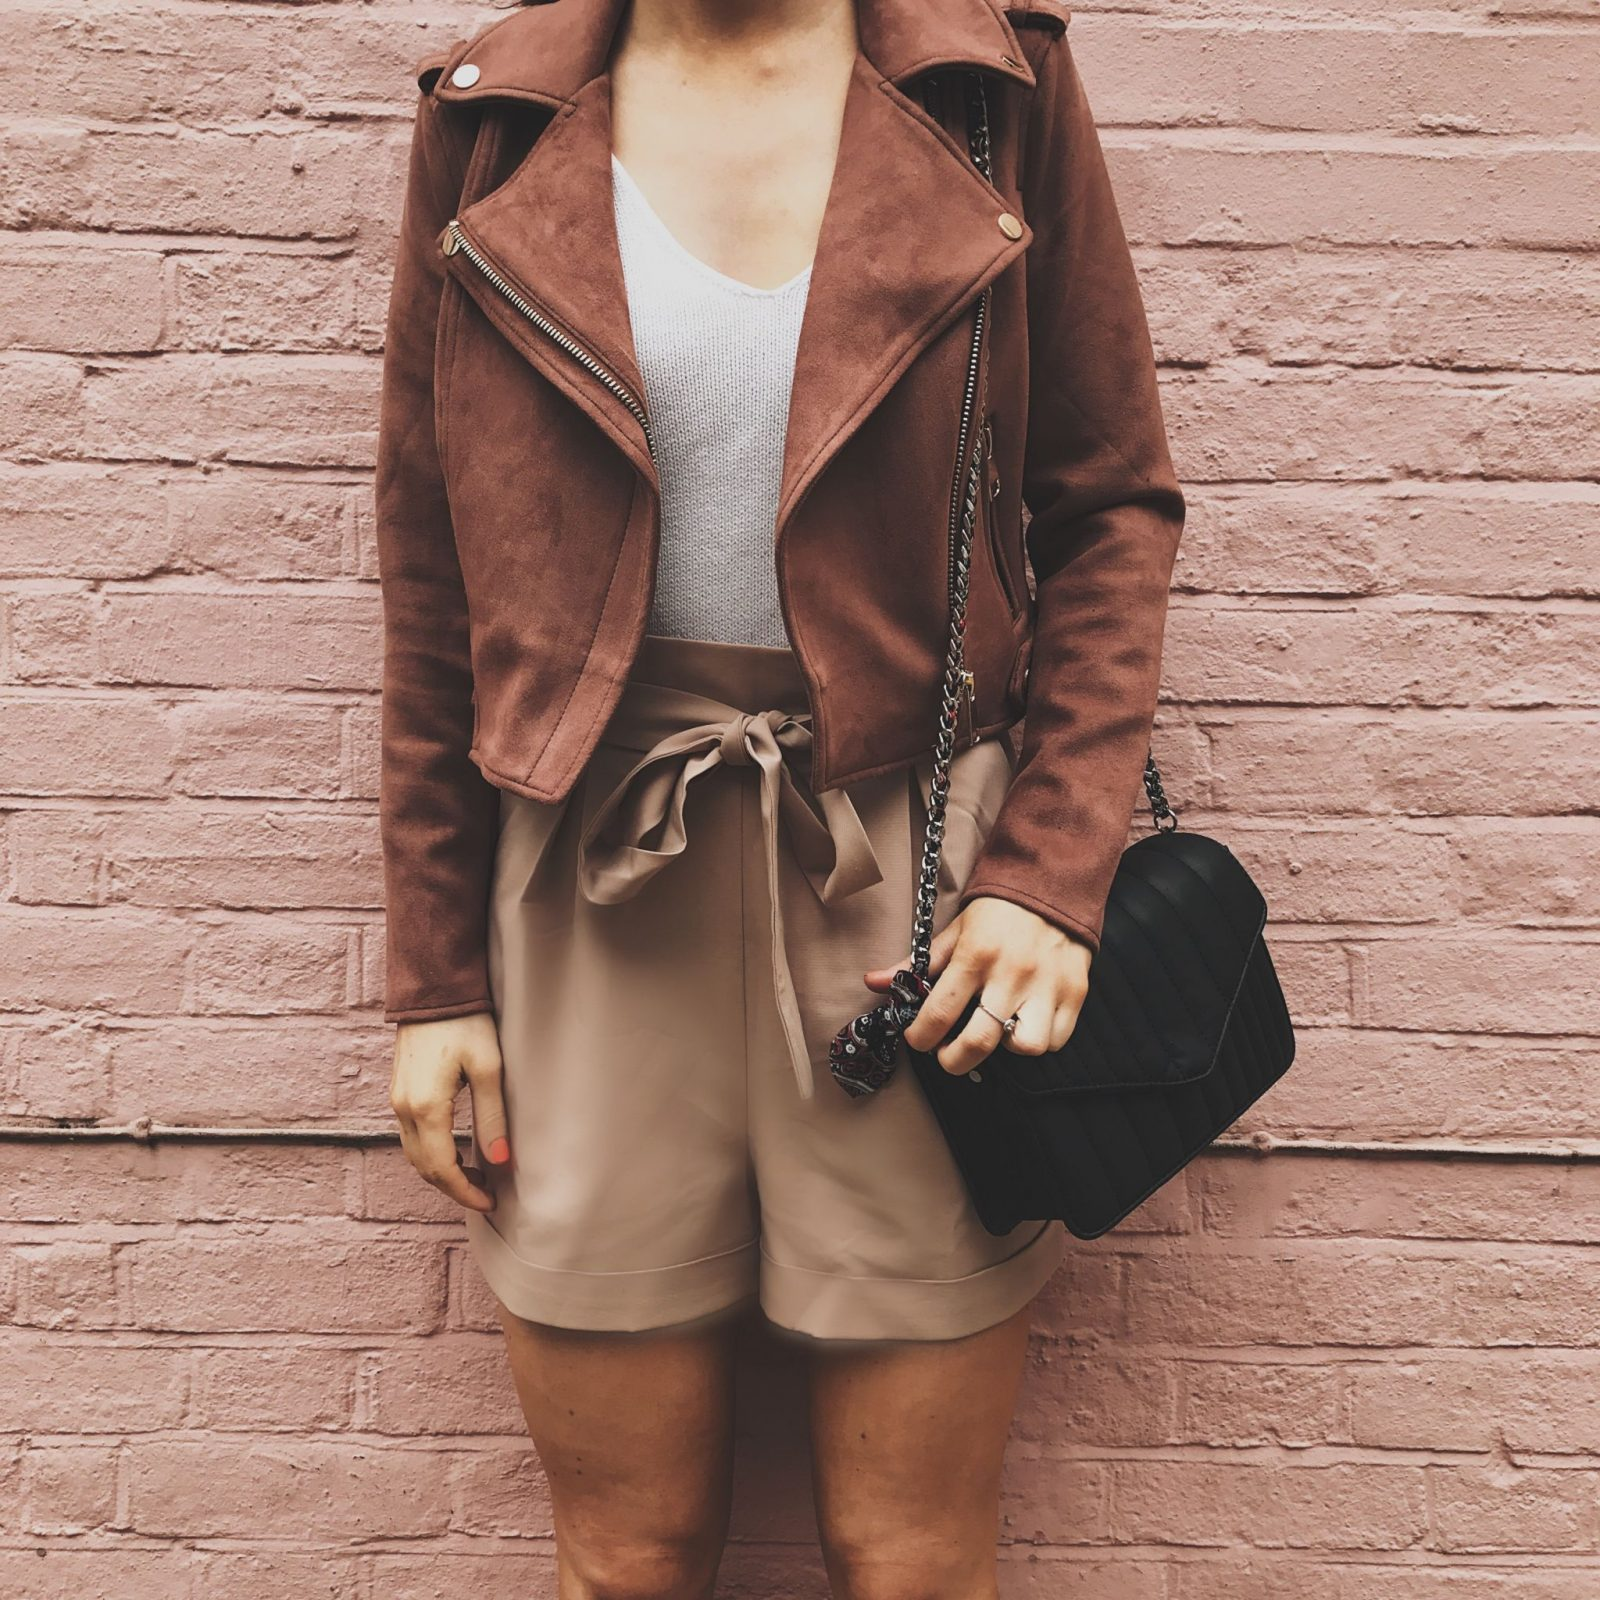 River-Island-pink-suede-jacket-and-tailored-shorts_EllaRyderIMG_4523-1600x1600.jpg